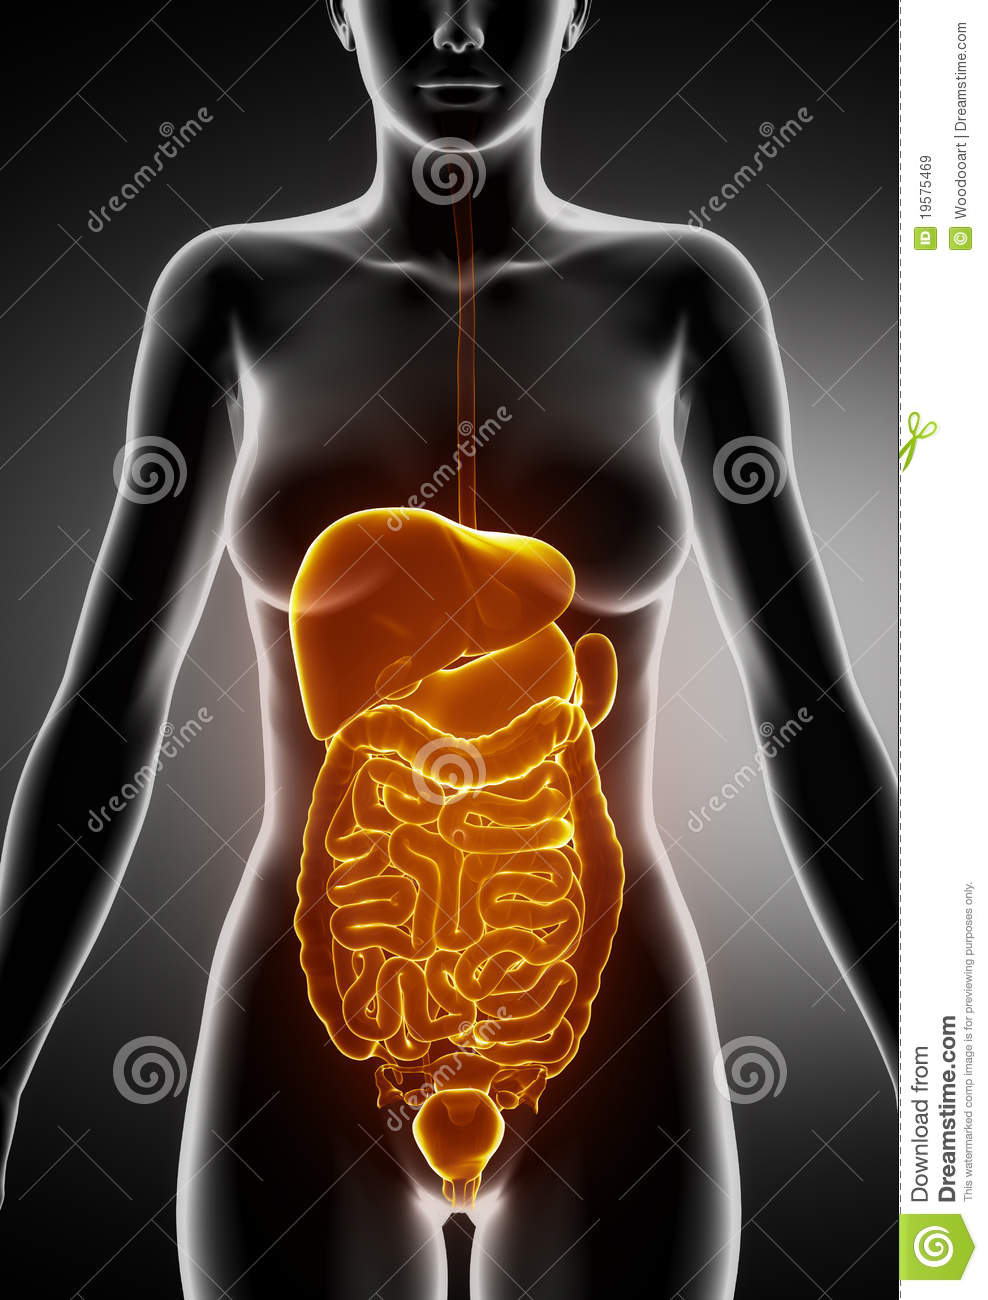 Female Abdominal organs stock illustration. Illustration of ...